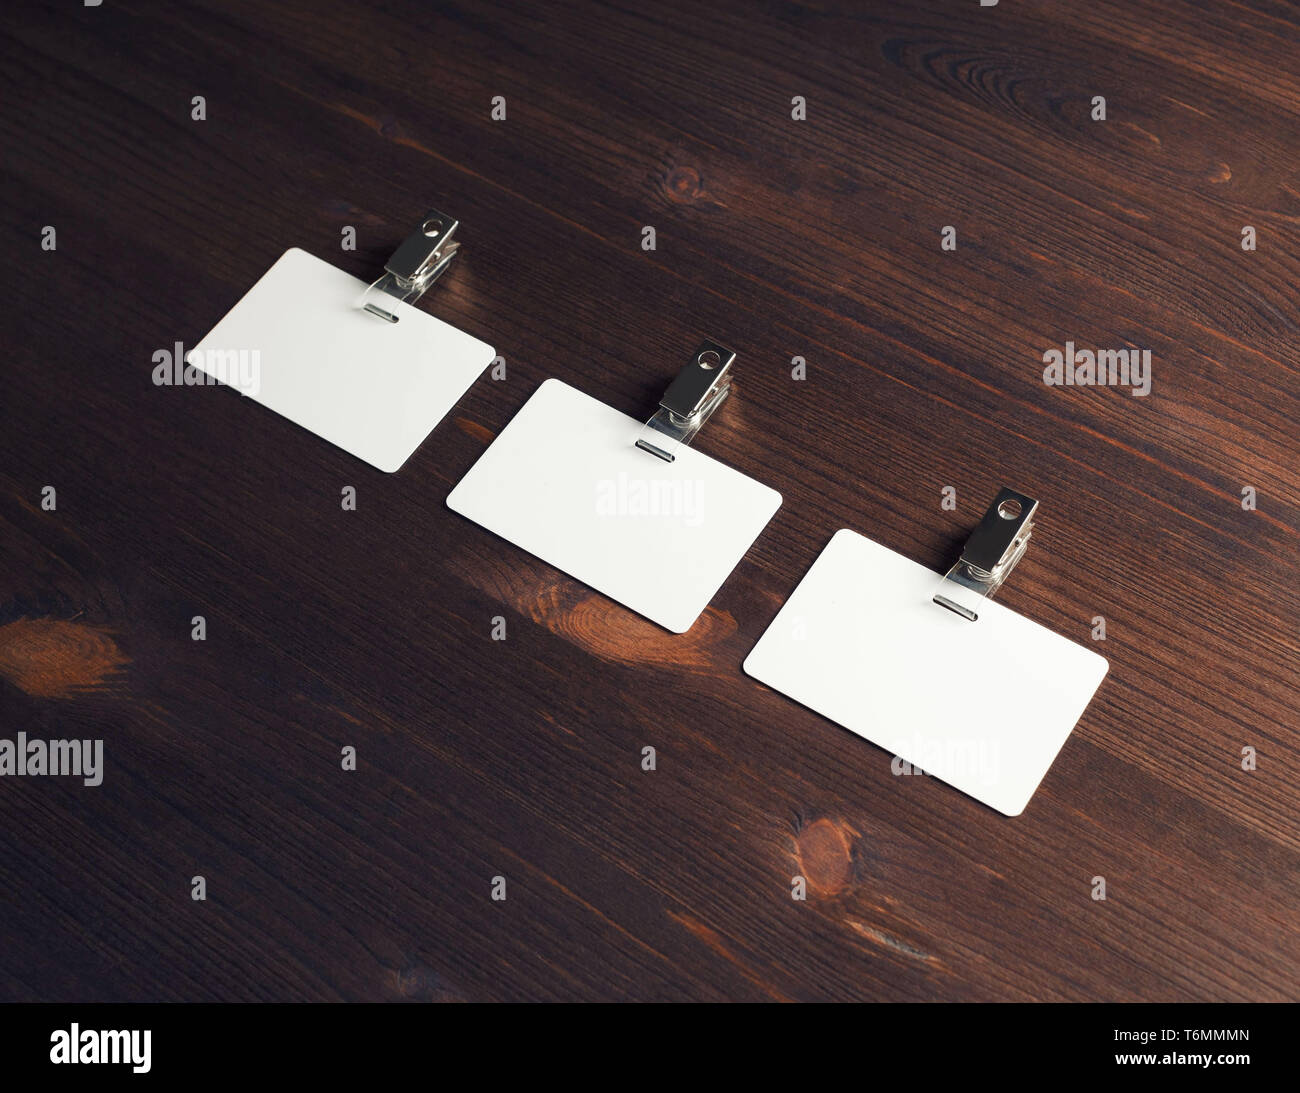 Blank id cards - Stock Image